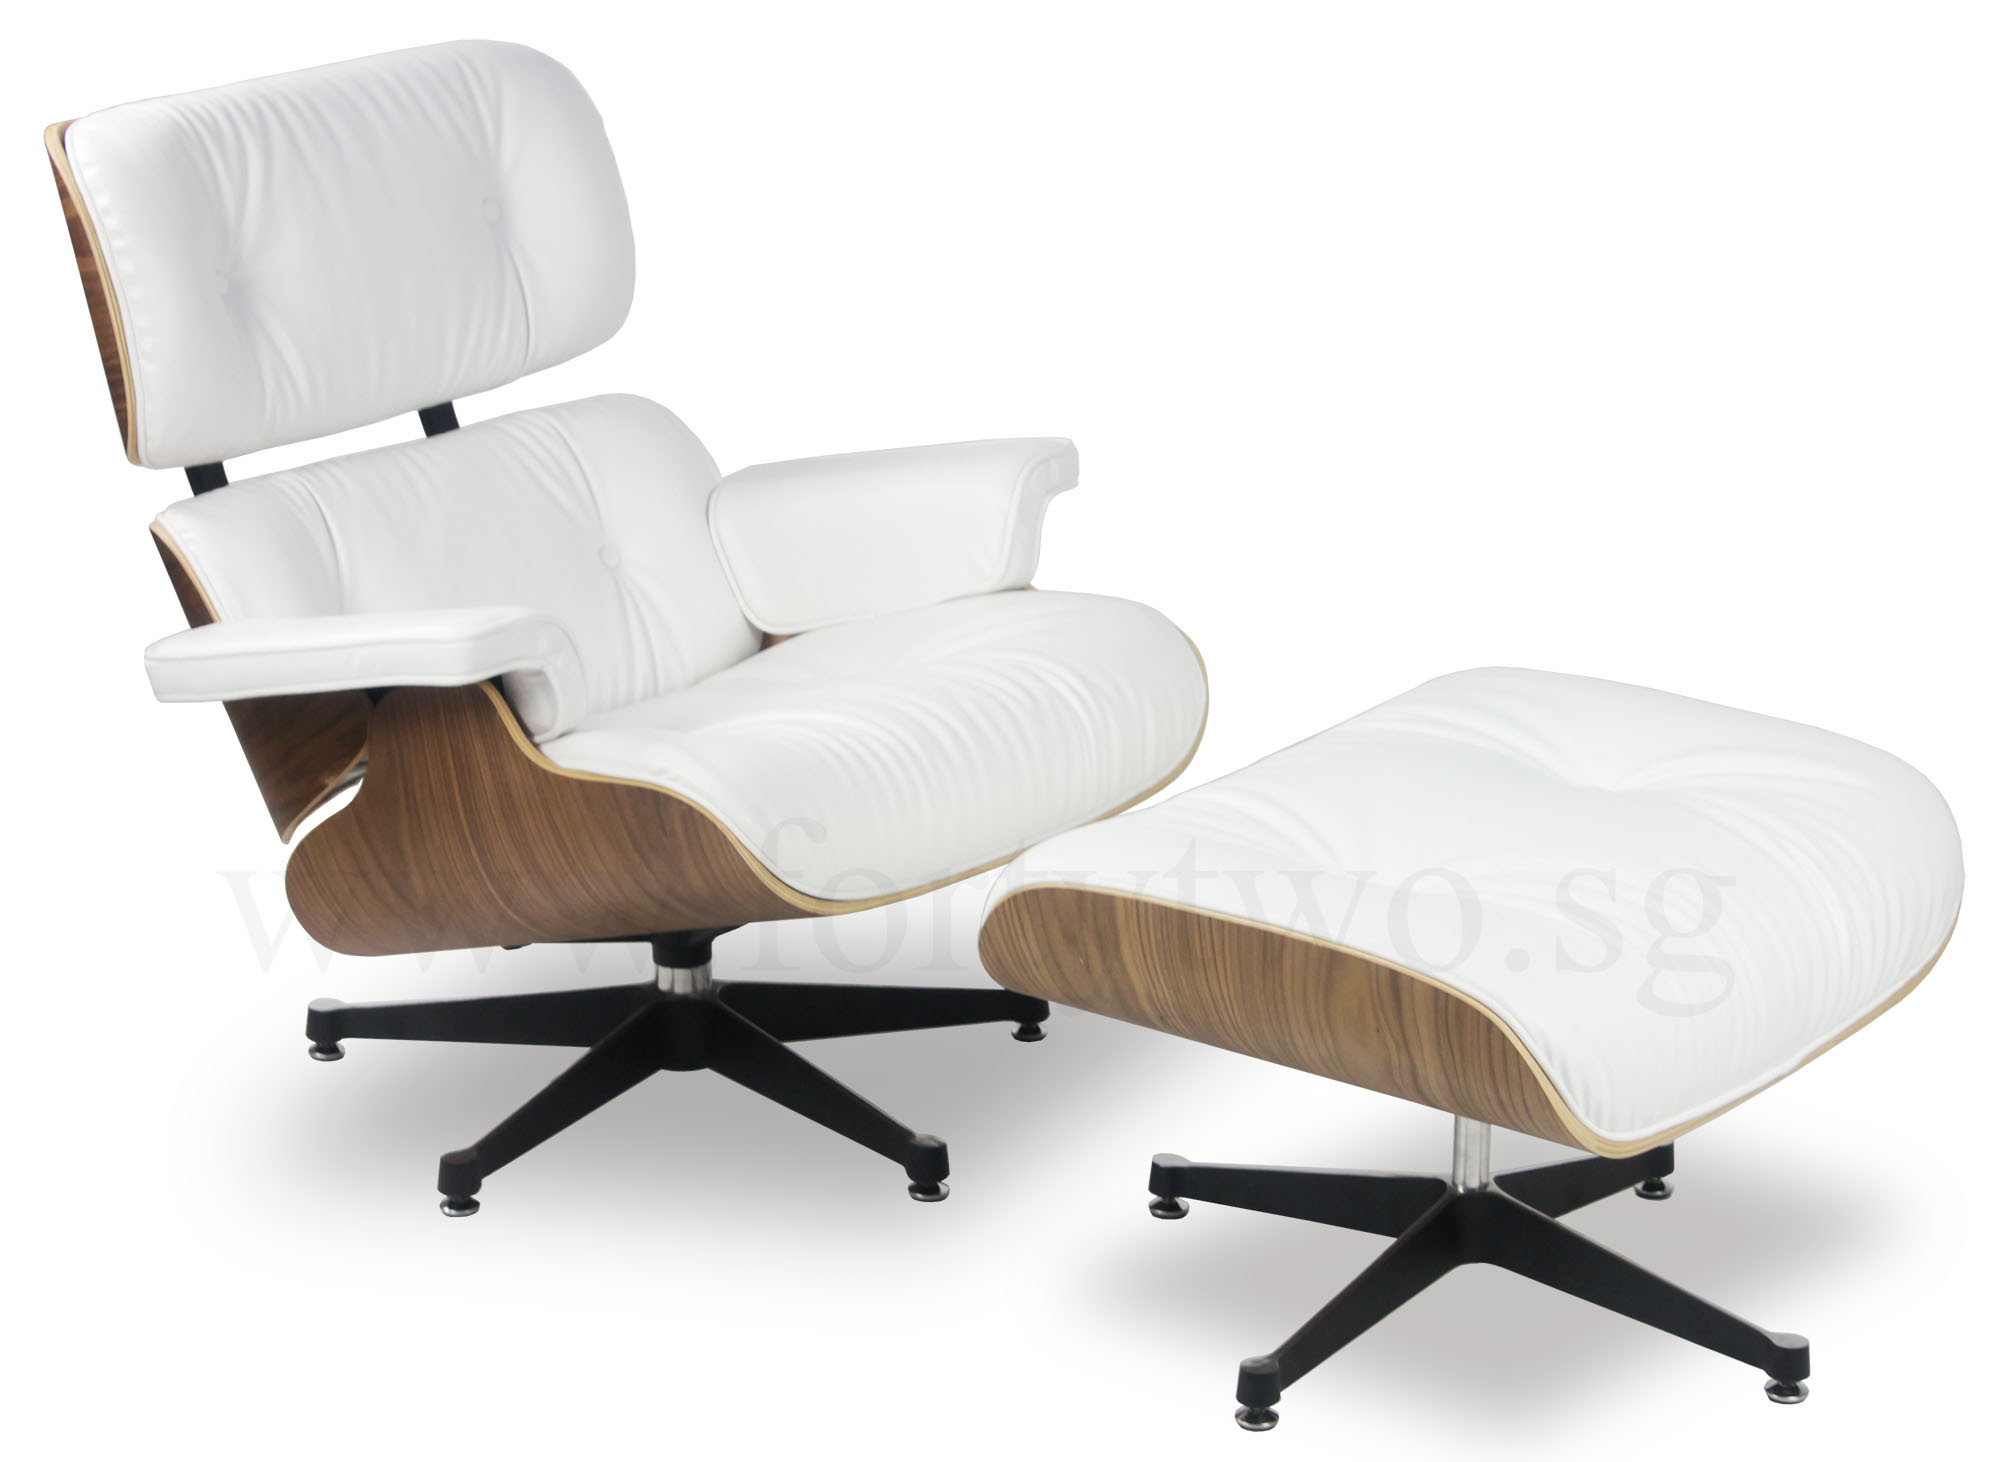 Designer Replica Eames Lounge Chair  White